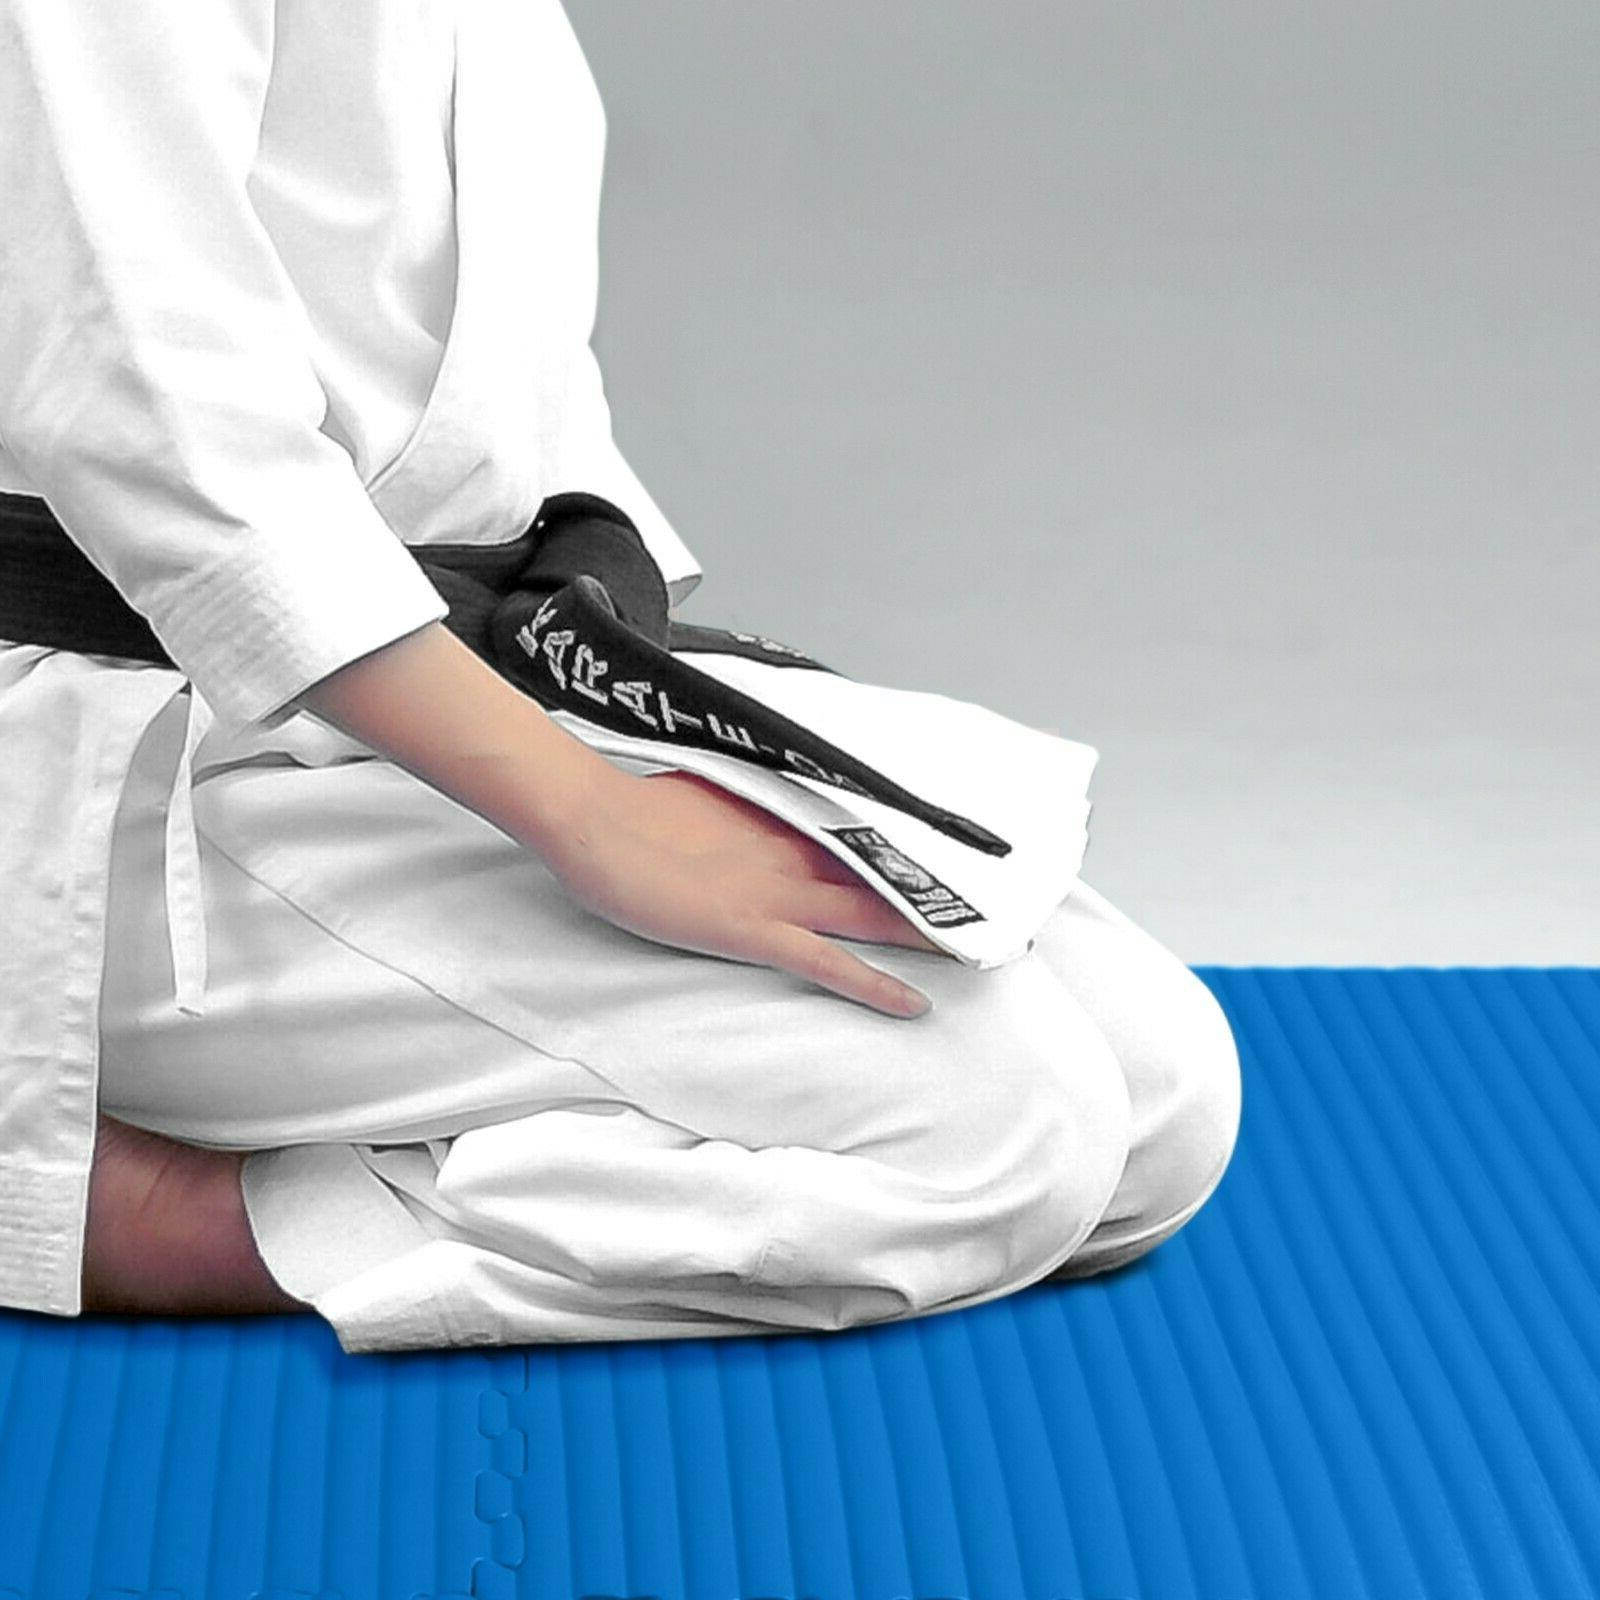 100 sq Pattern for Jiu Jitsu Karate MMA Floor